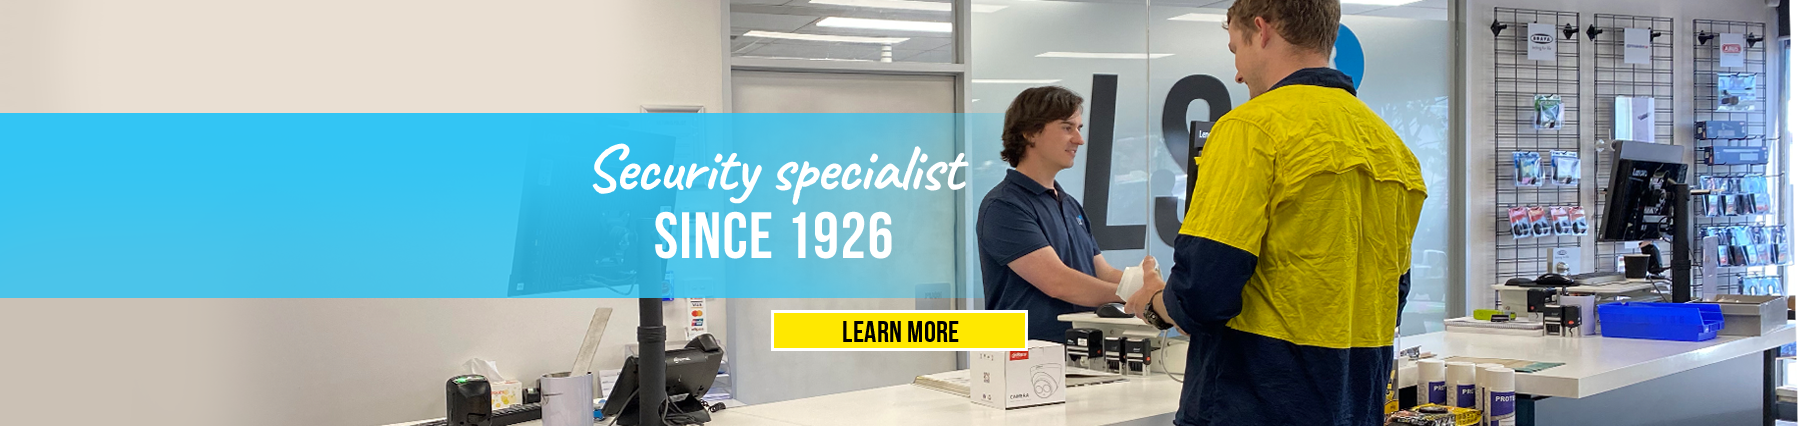 OSecurity Specialists Since 1926